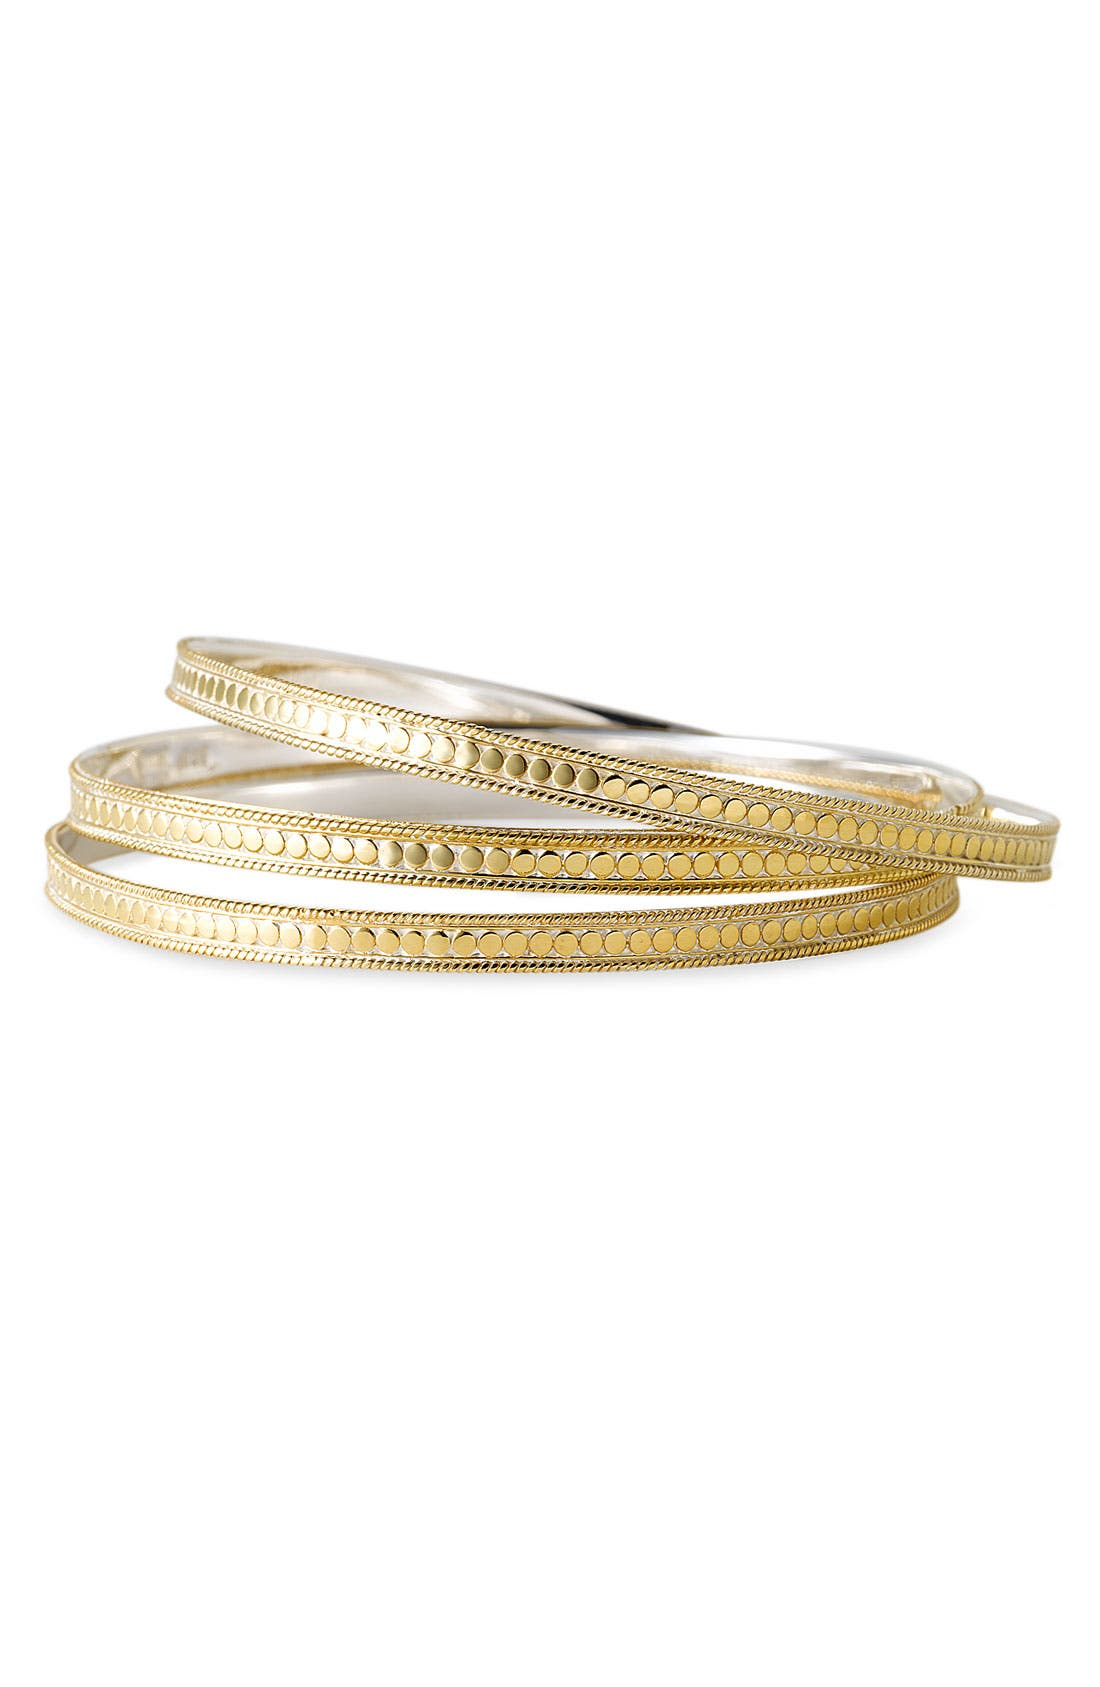 Main Image - Anna Beck 'Timor' Stacking Skinny Bangles (Set of 3)